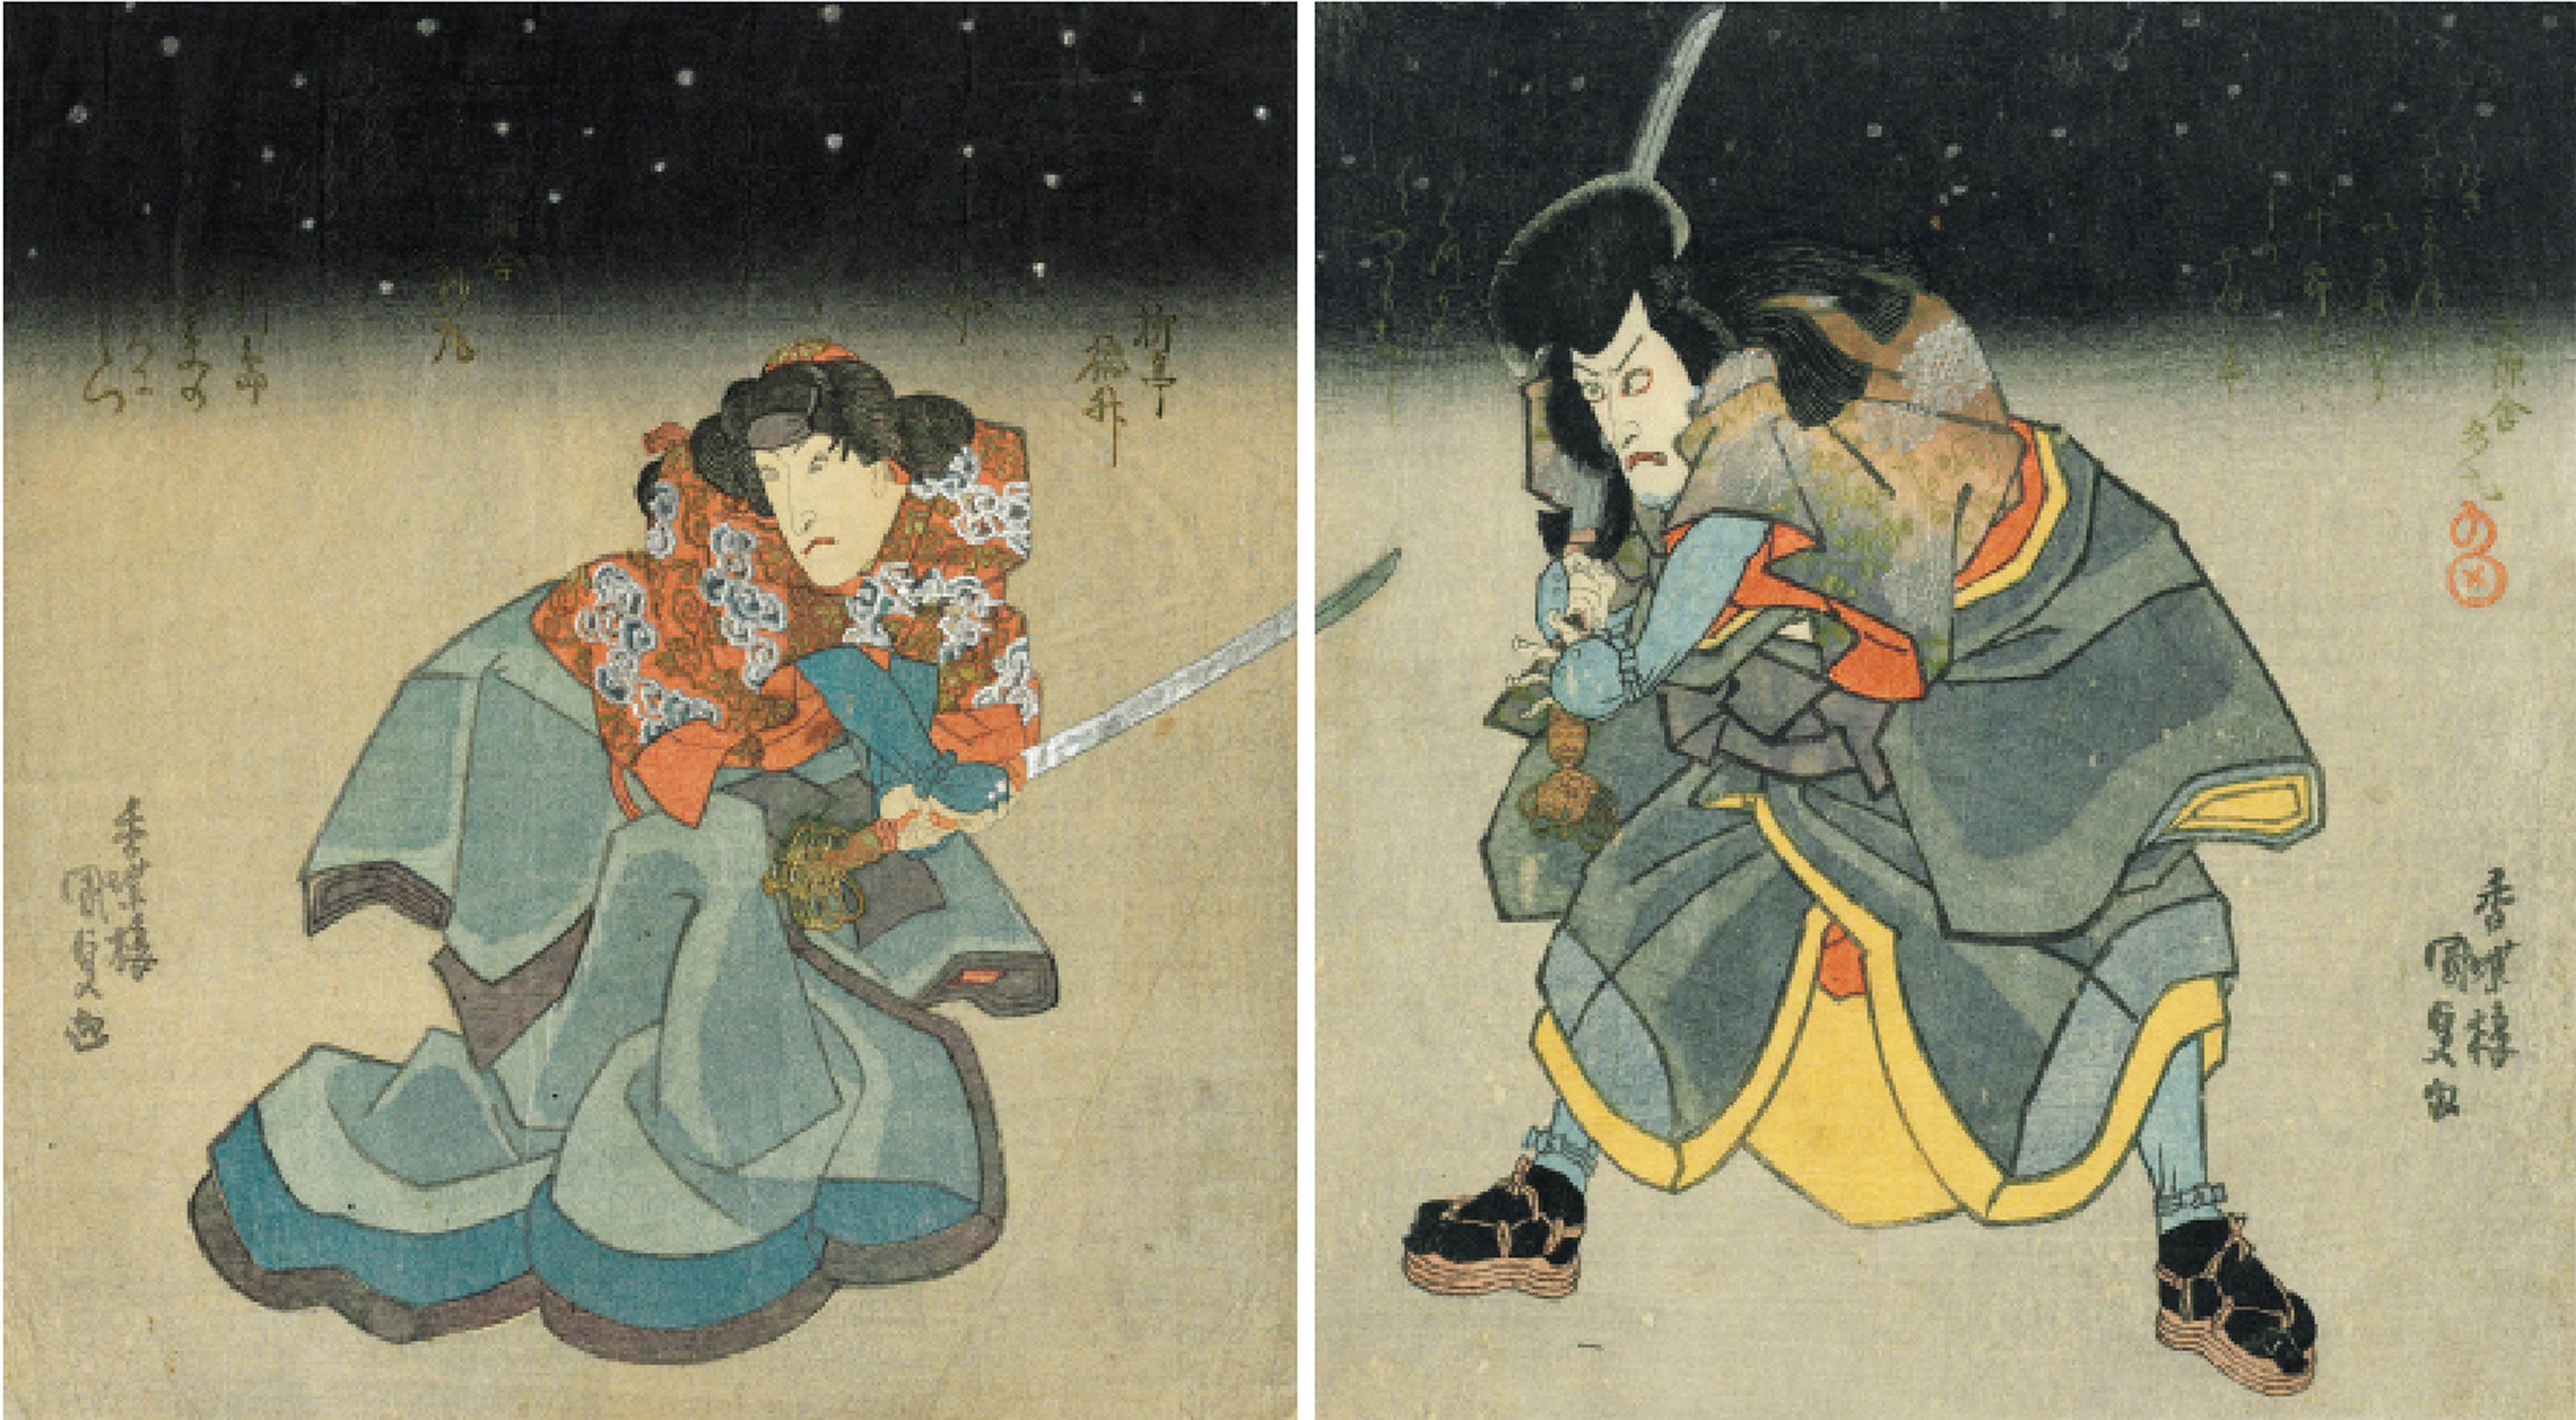 Two Actors Fighting at Night